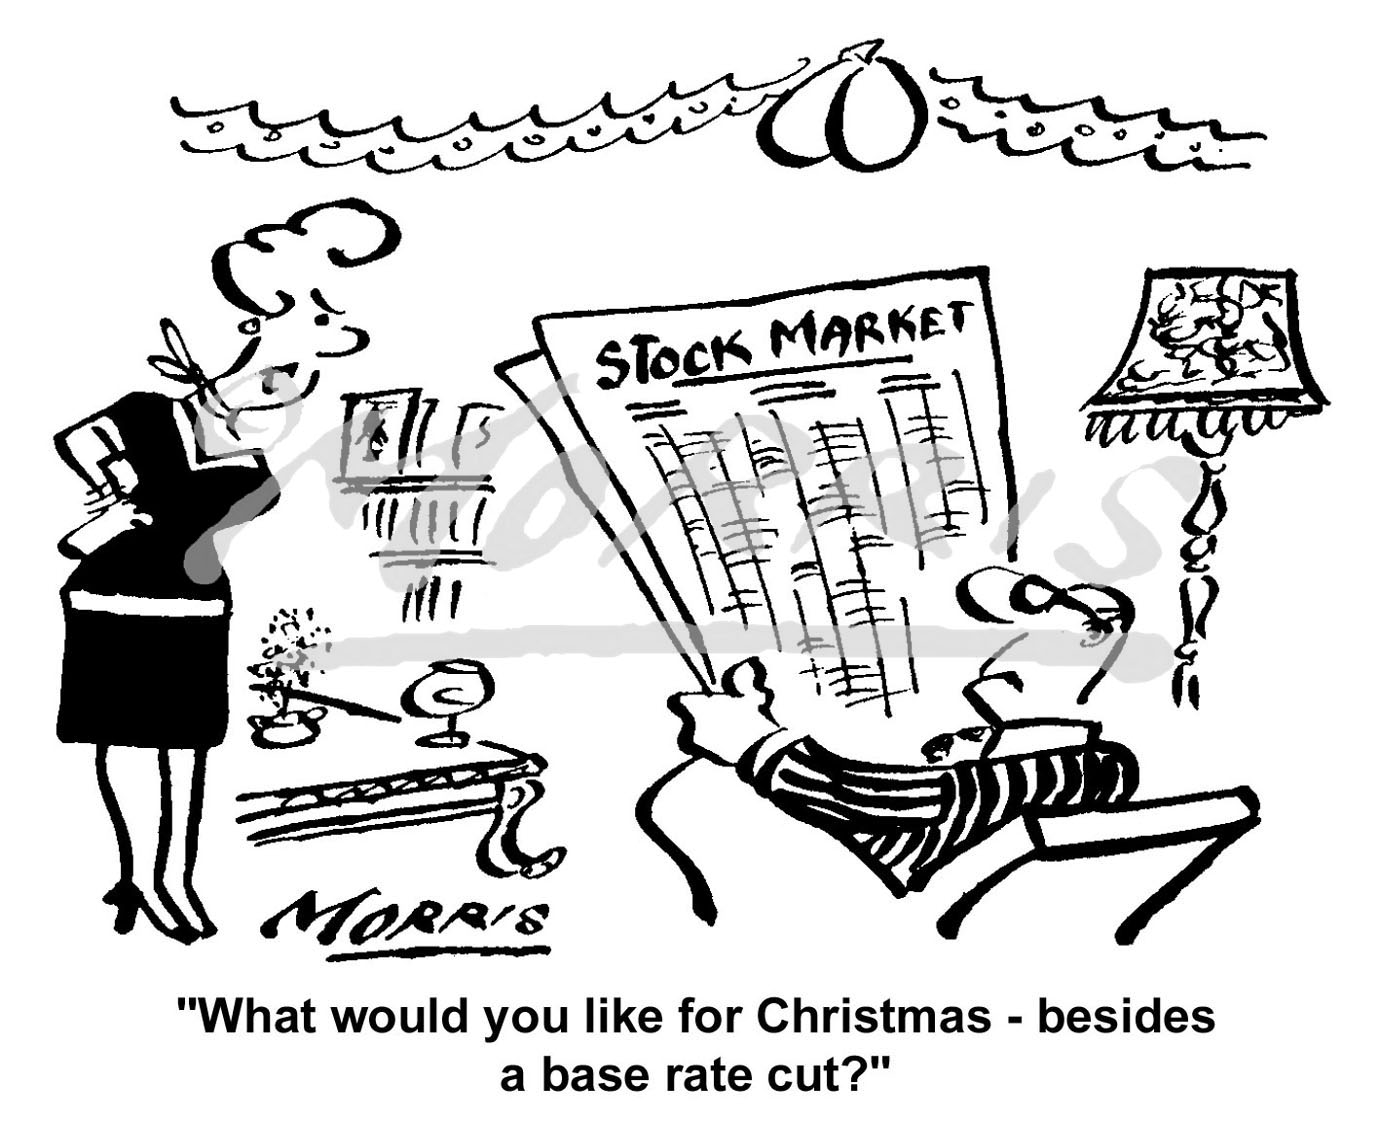 Christmas stock market cartoon Ref: 1915bw